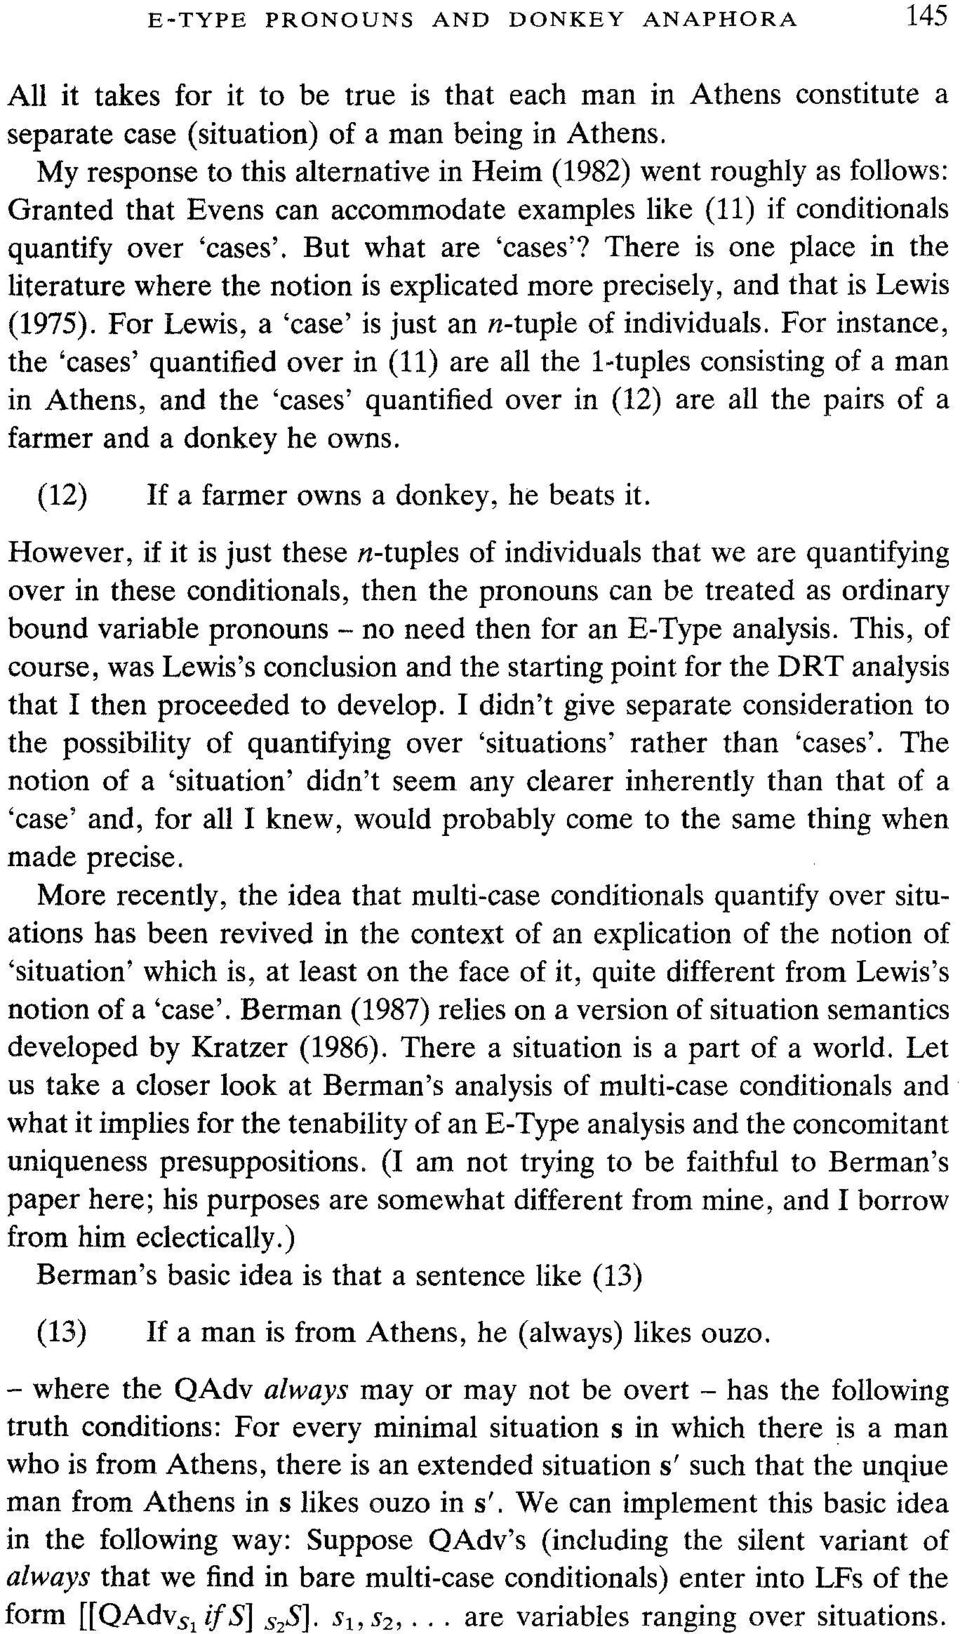 There is one place in the literature where the notion is explicated more precisely, and that is Lewis (1975). For Lewis, a 'case' is just an n-tuple of individuals.